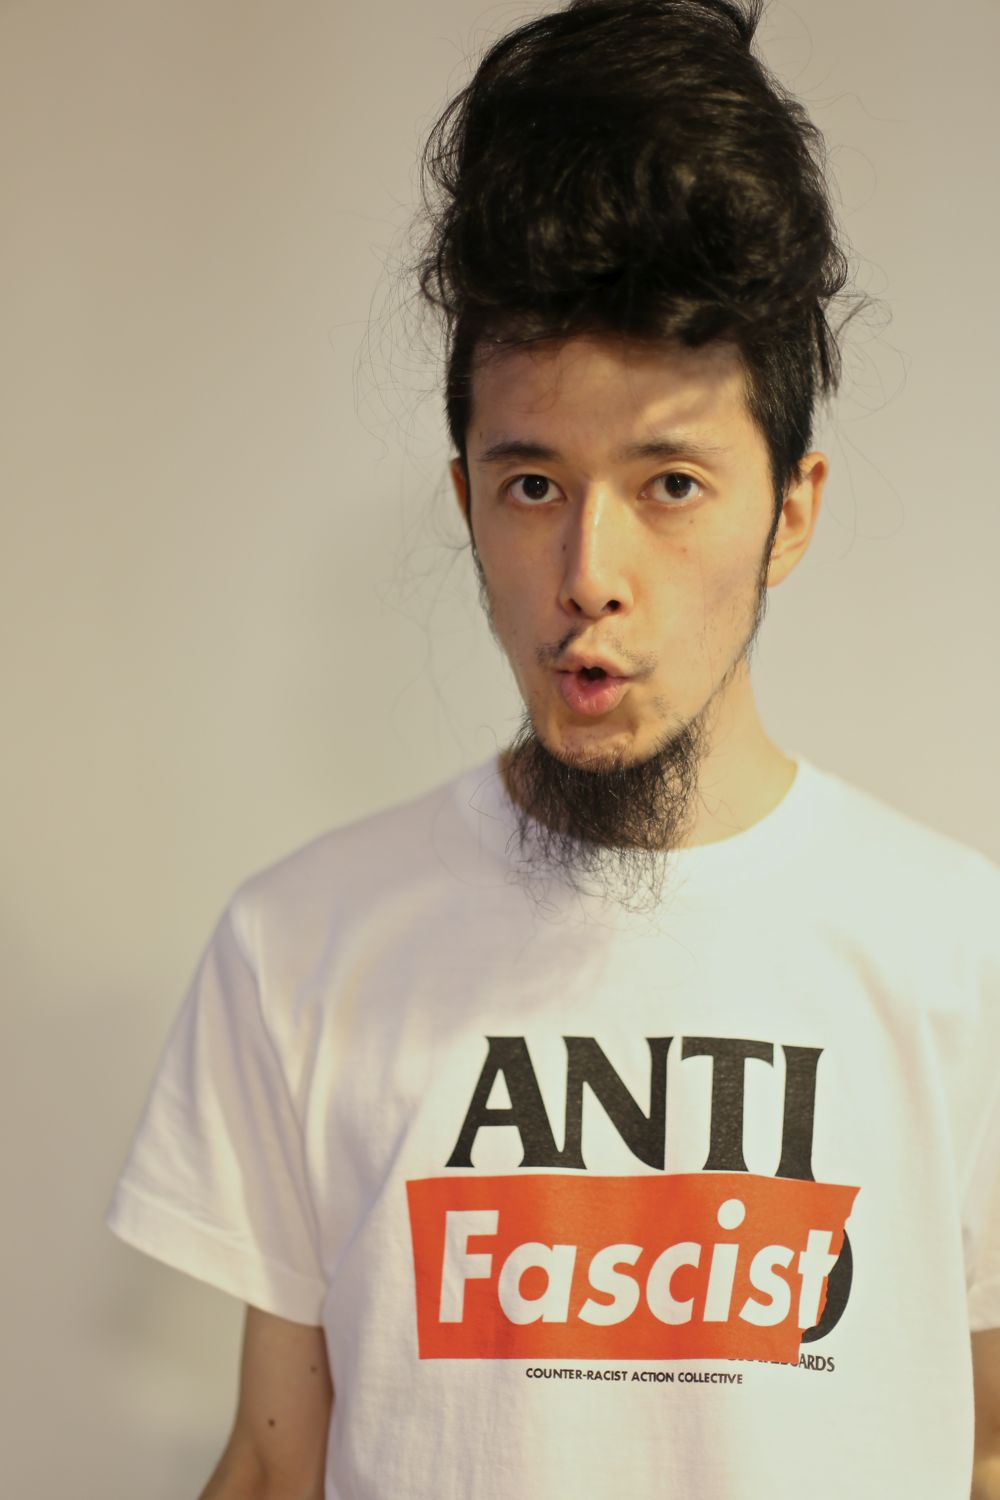 094 - 30 years old(ANTI Fascist Tee)_f0183059_21192525.jpg